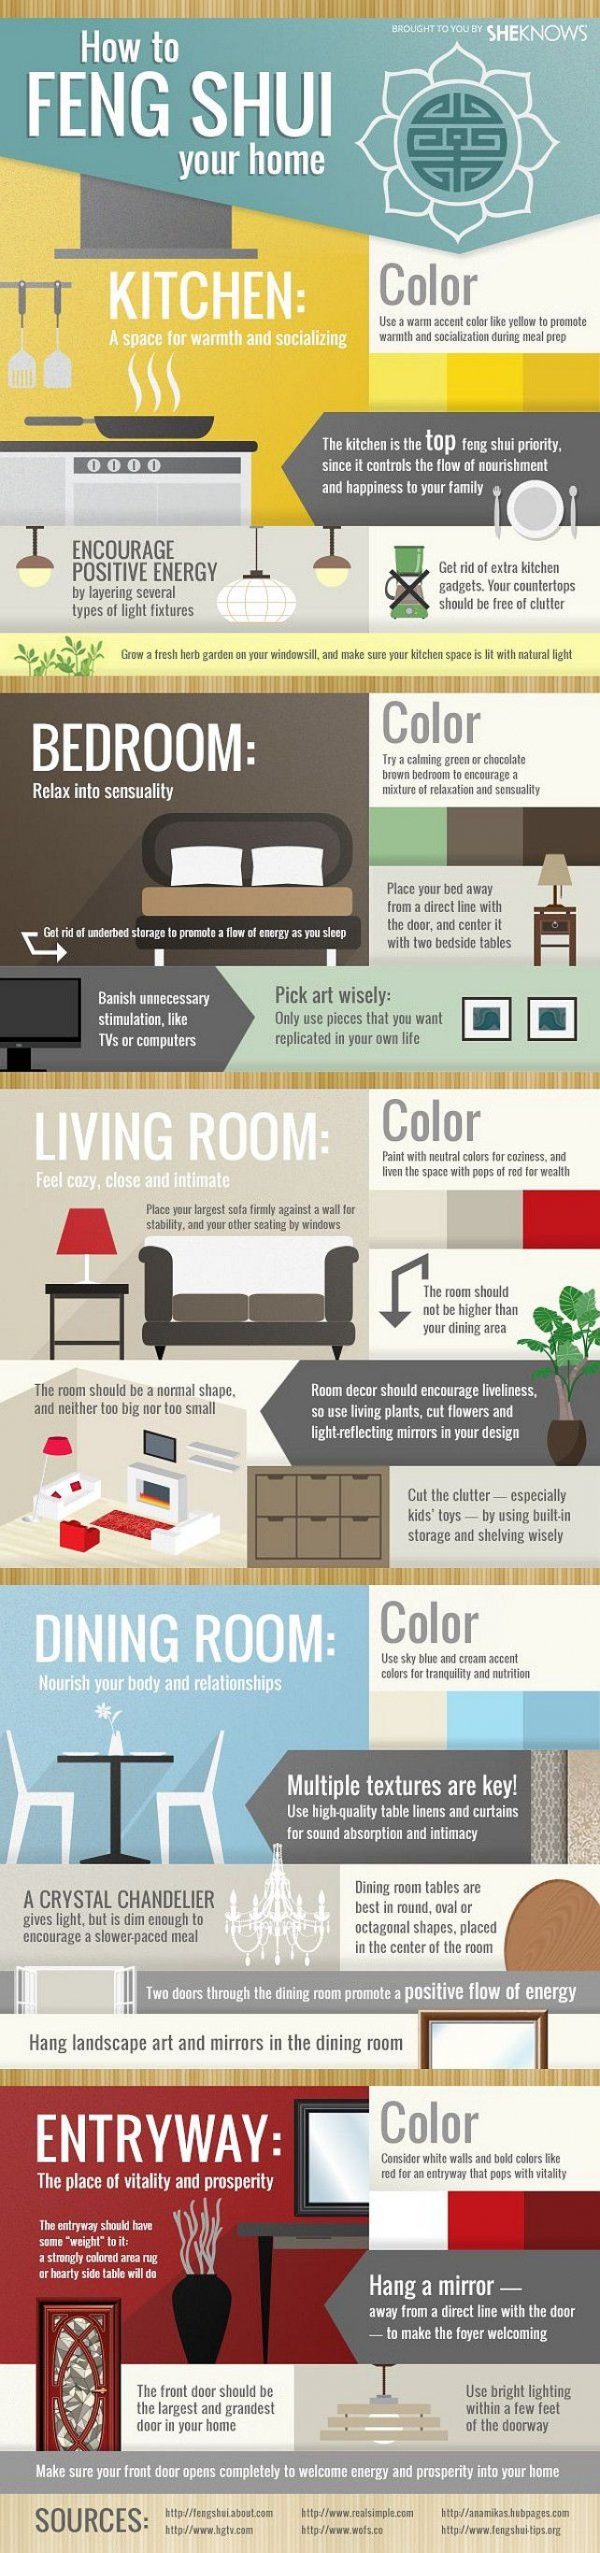 Feng Shui Decorating Tips